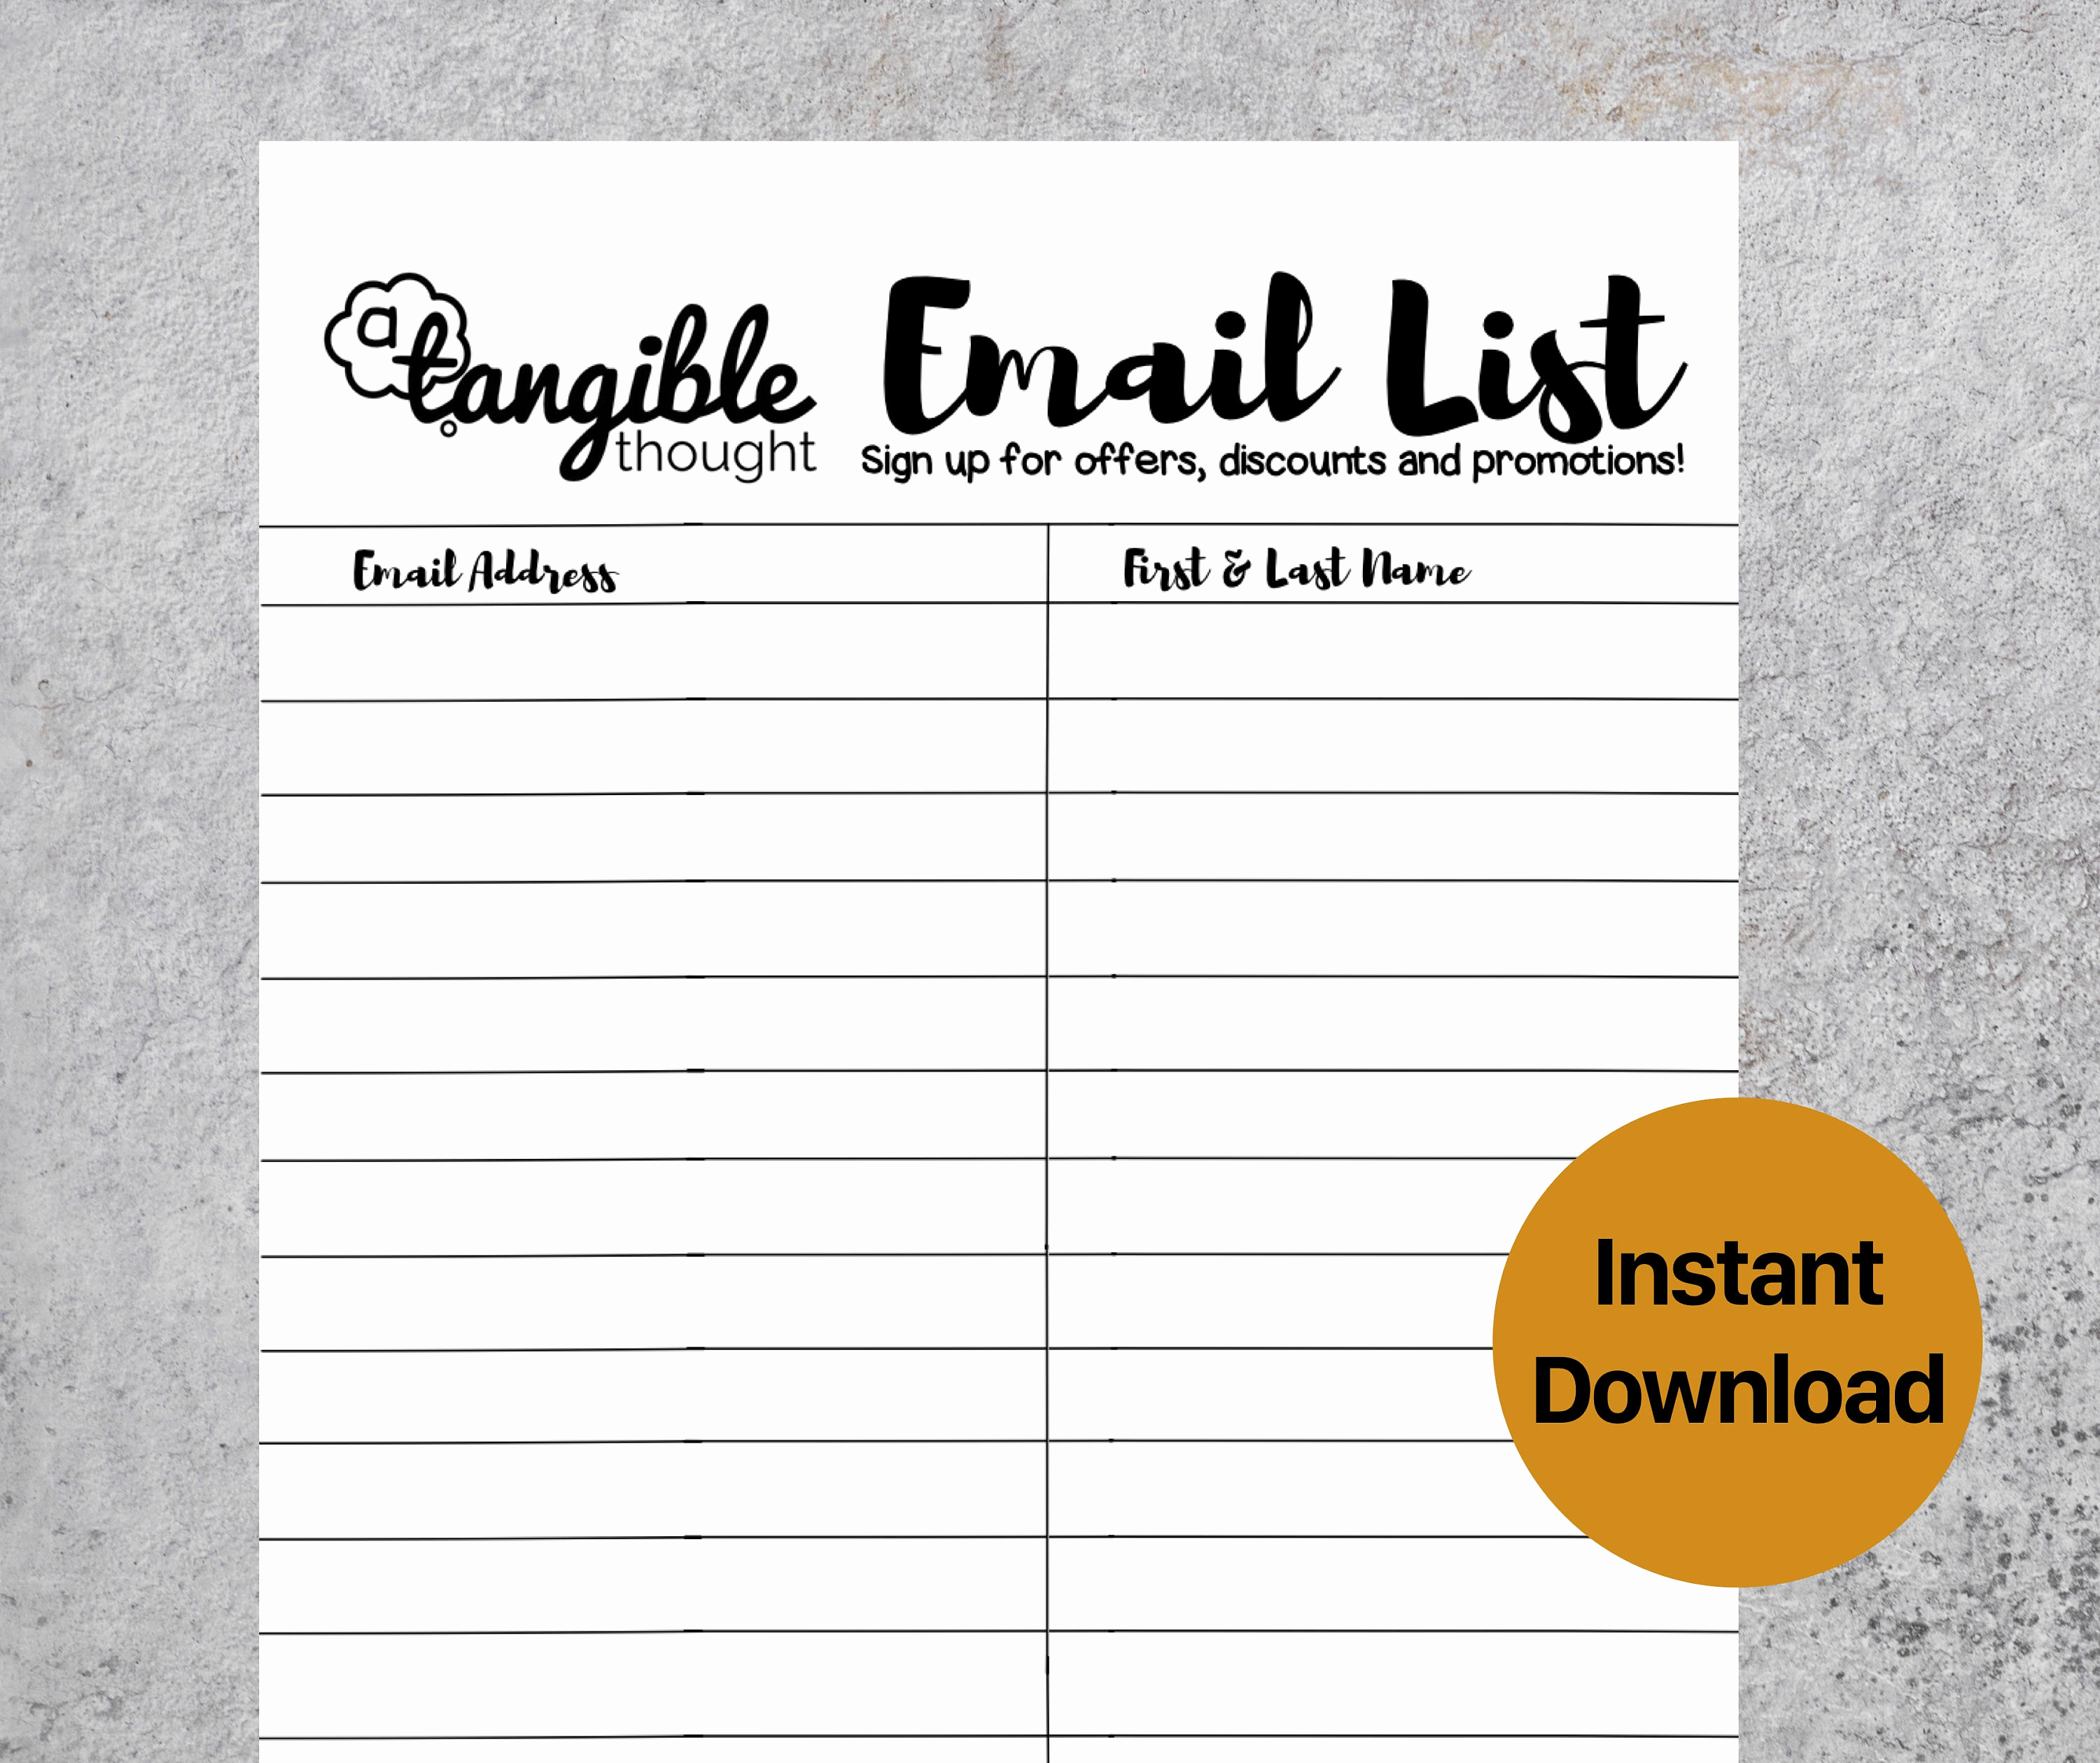 Email Sign Up Sheet Fresh Email Sign Up Template – Emmamcintyrephotography